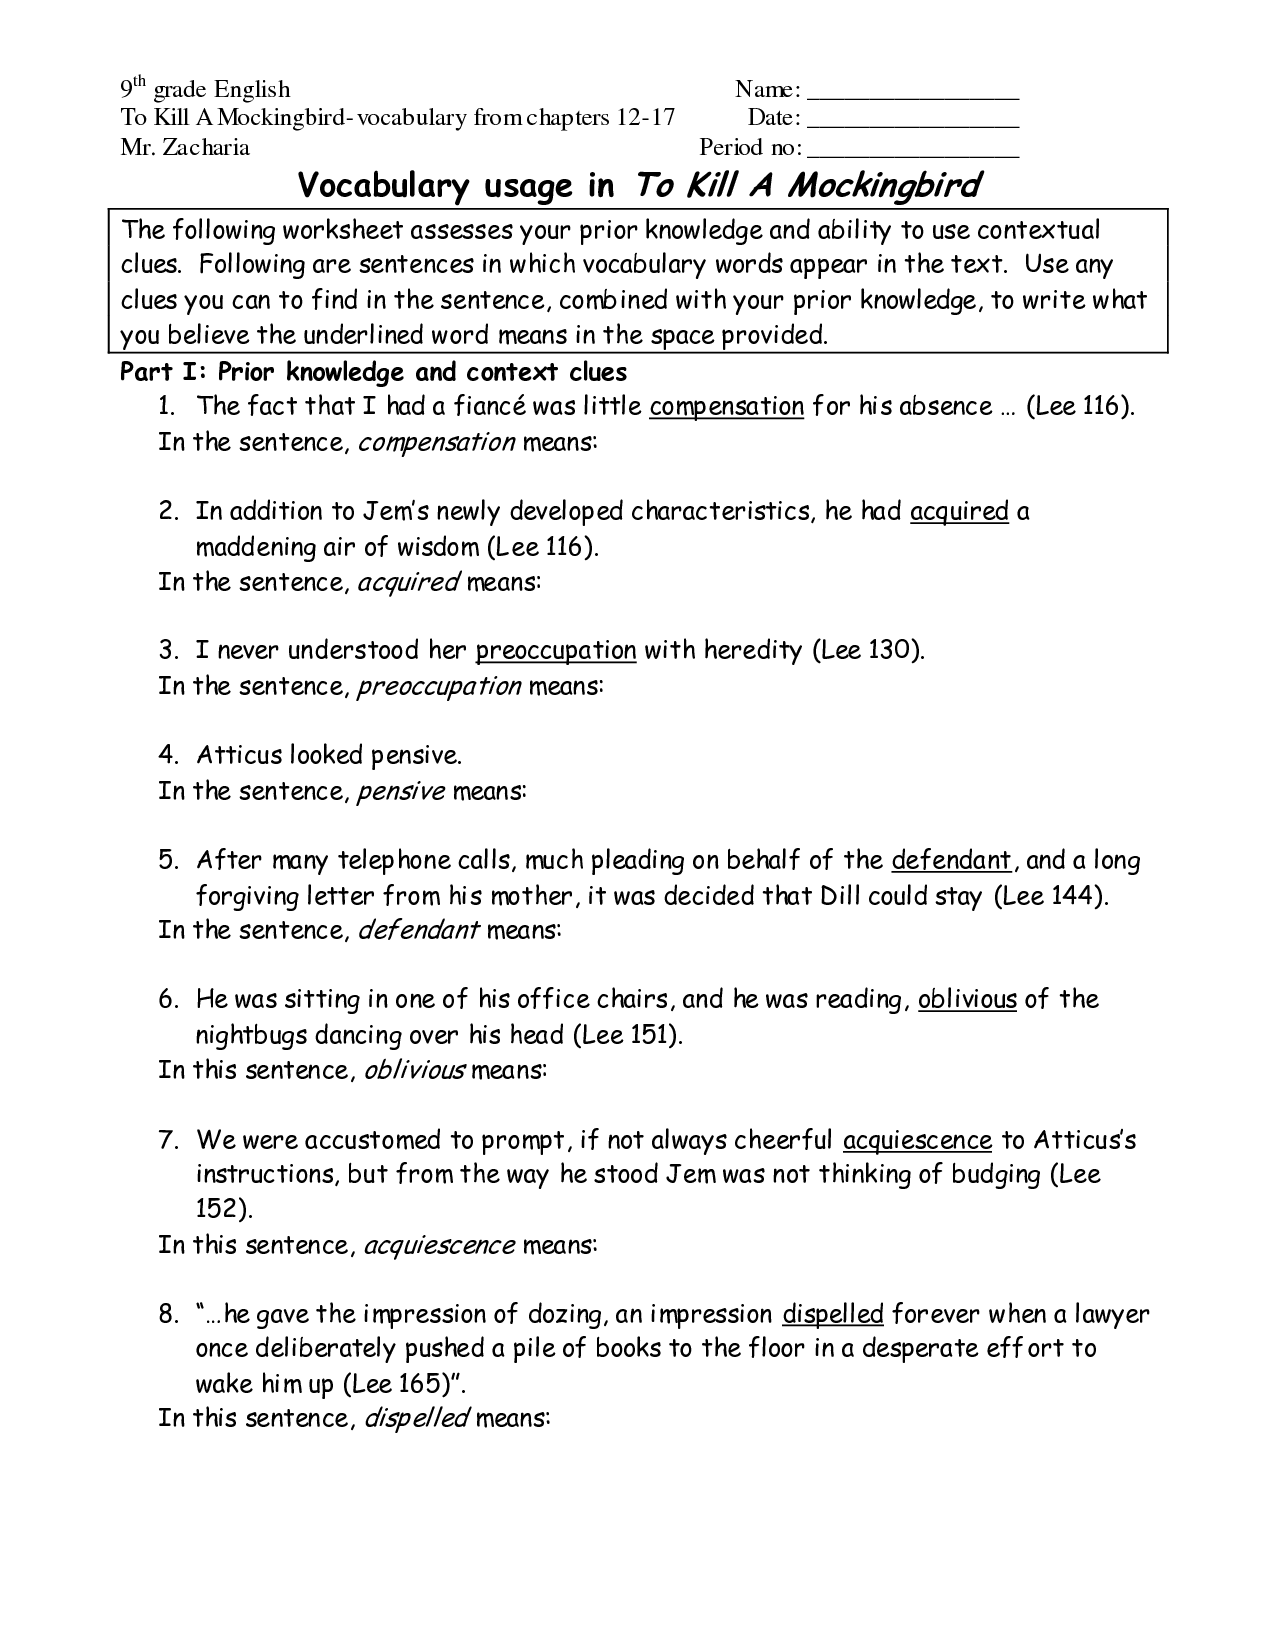 9th Grade Worksheet Category Page 1